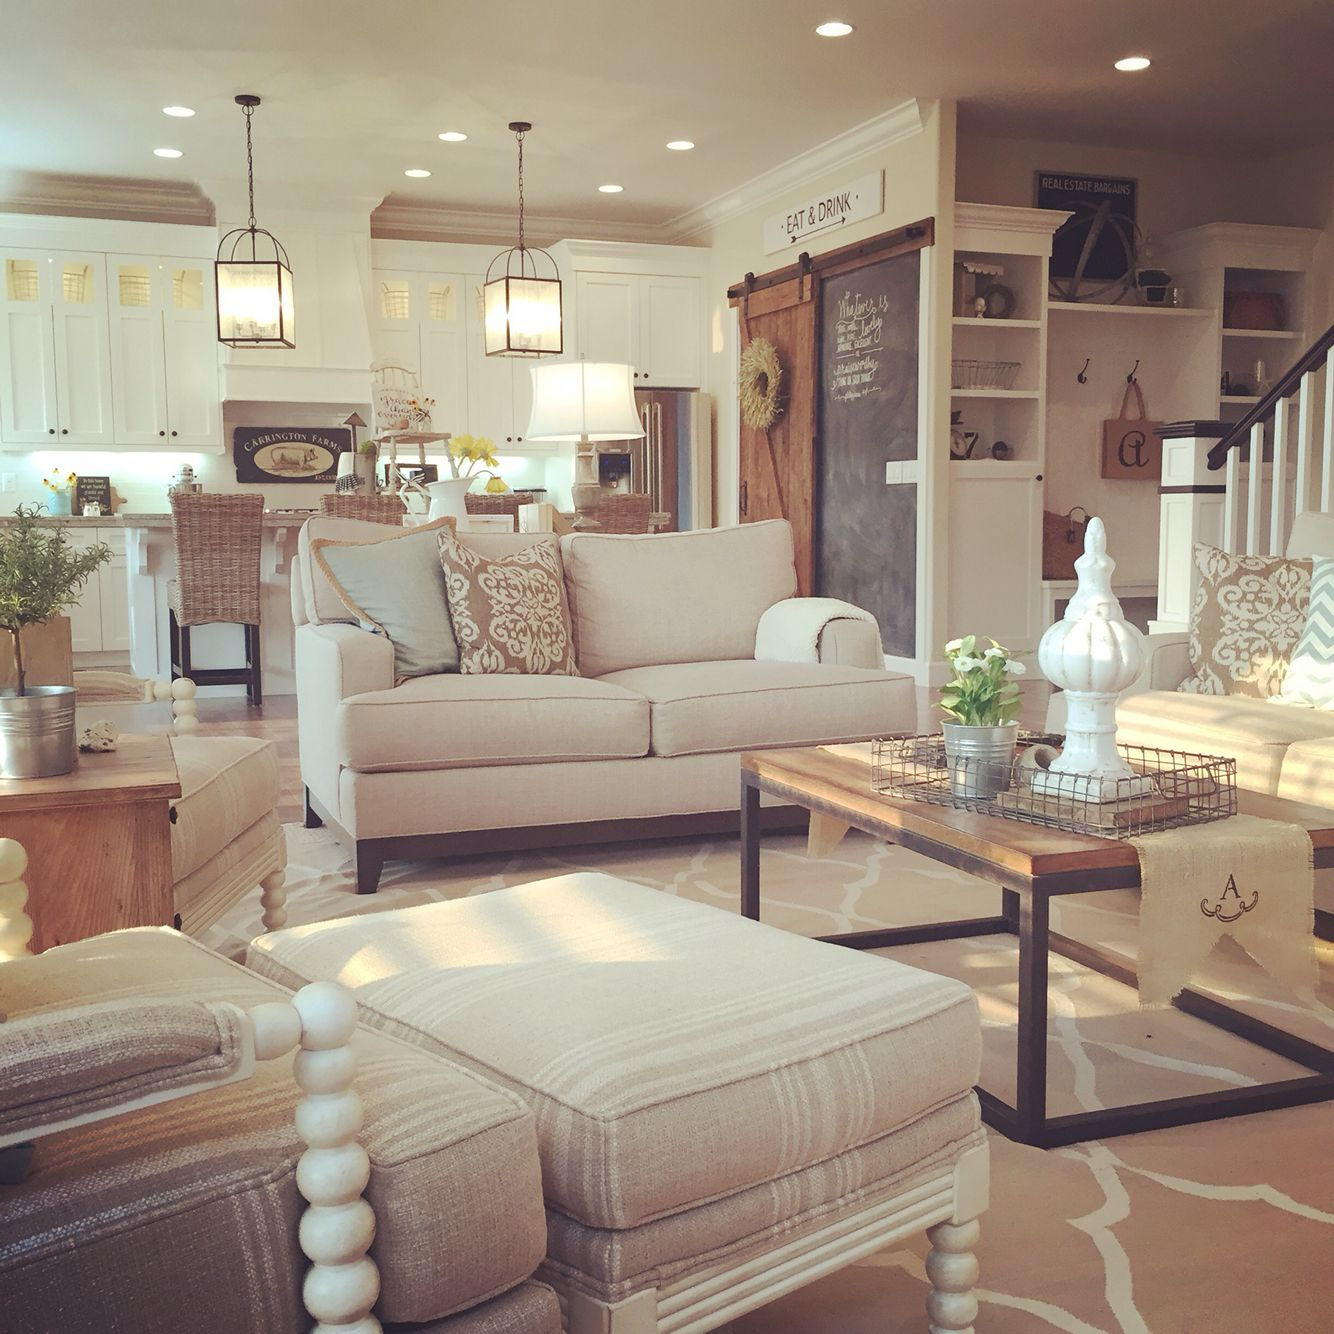 Farmhouse Living Room, Open Concept To Kitchen. Interior Design By Janna  Allbritton Of Yellow